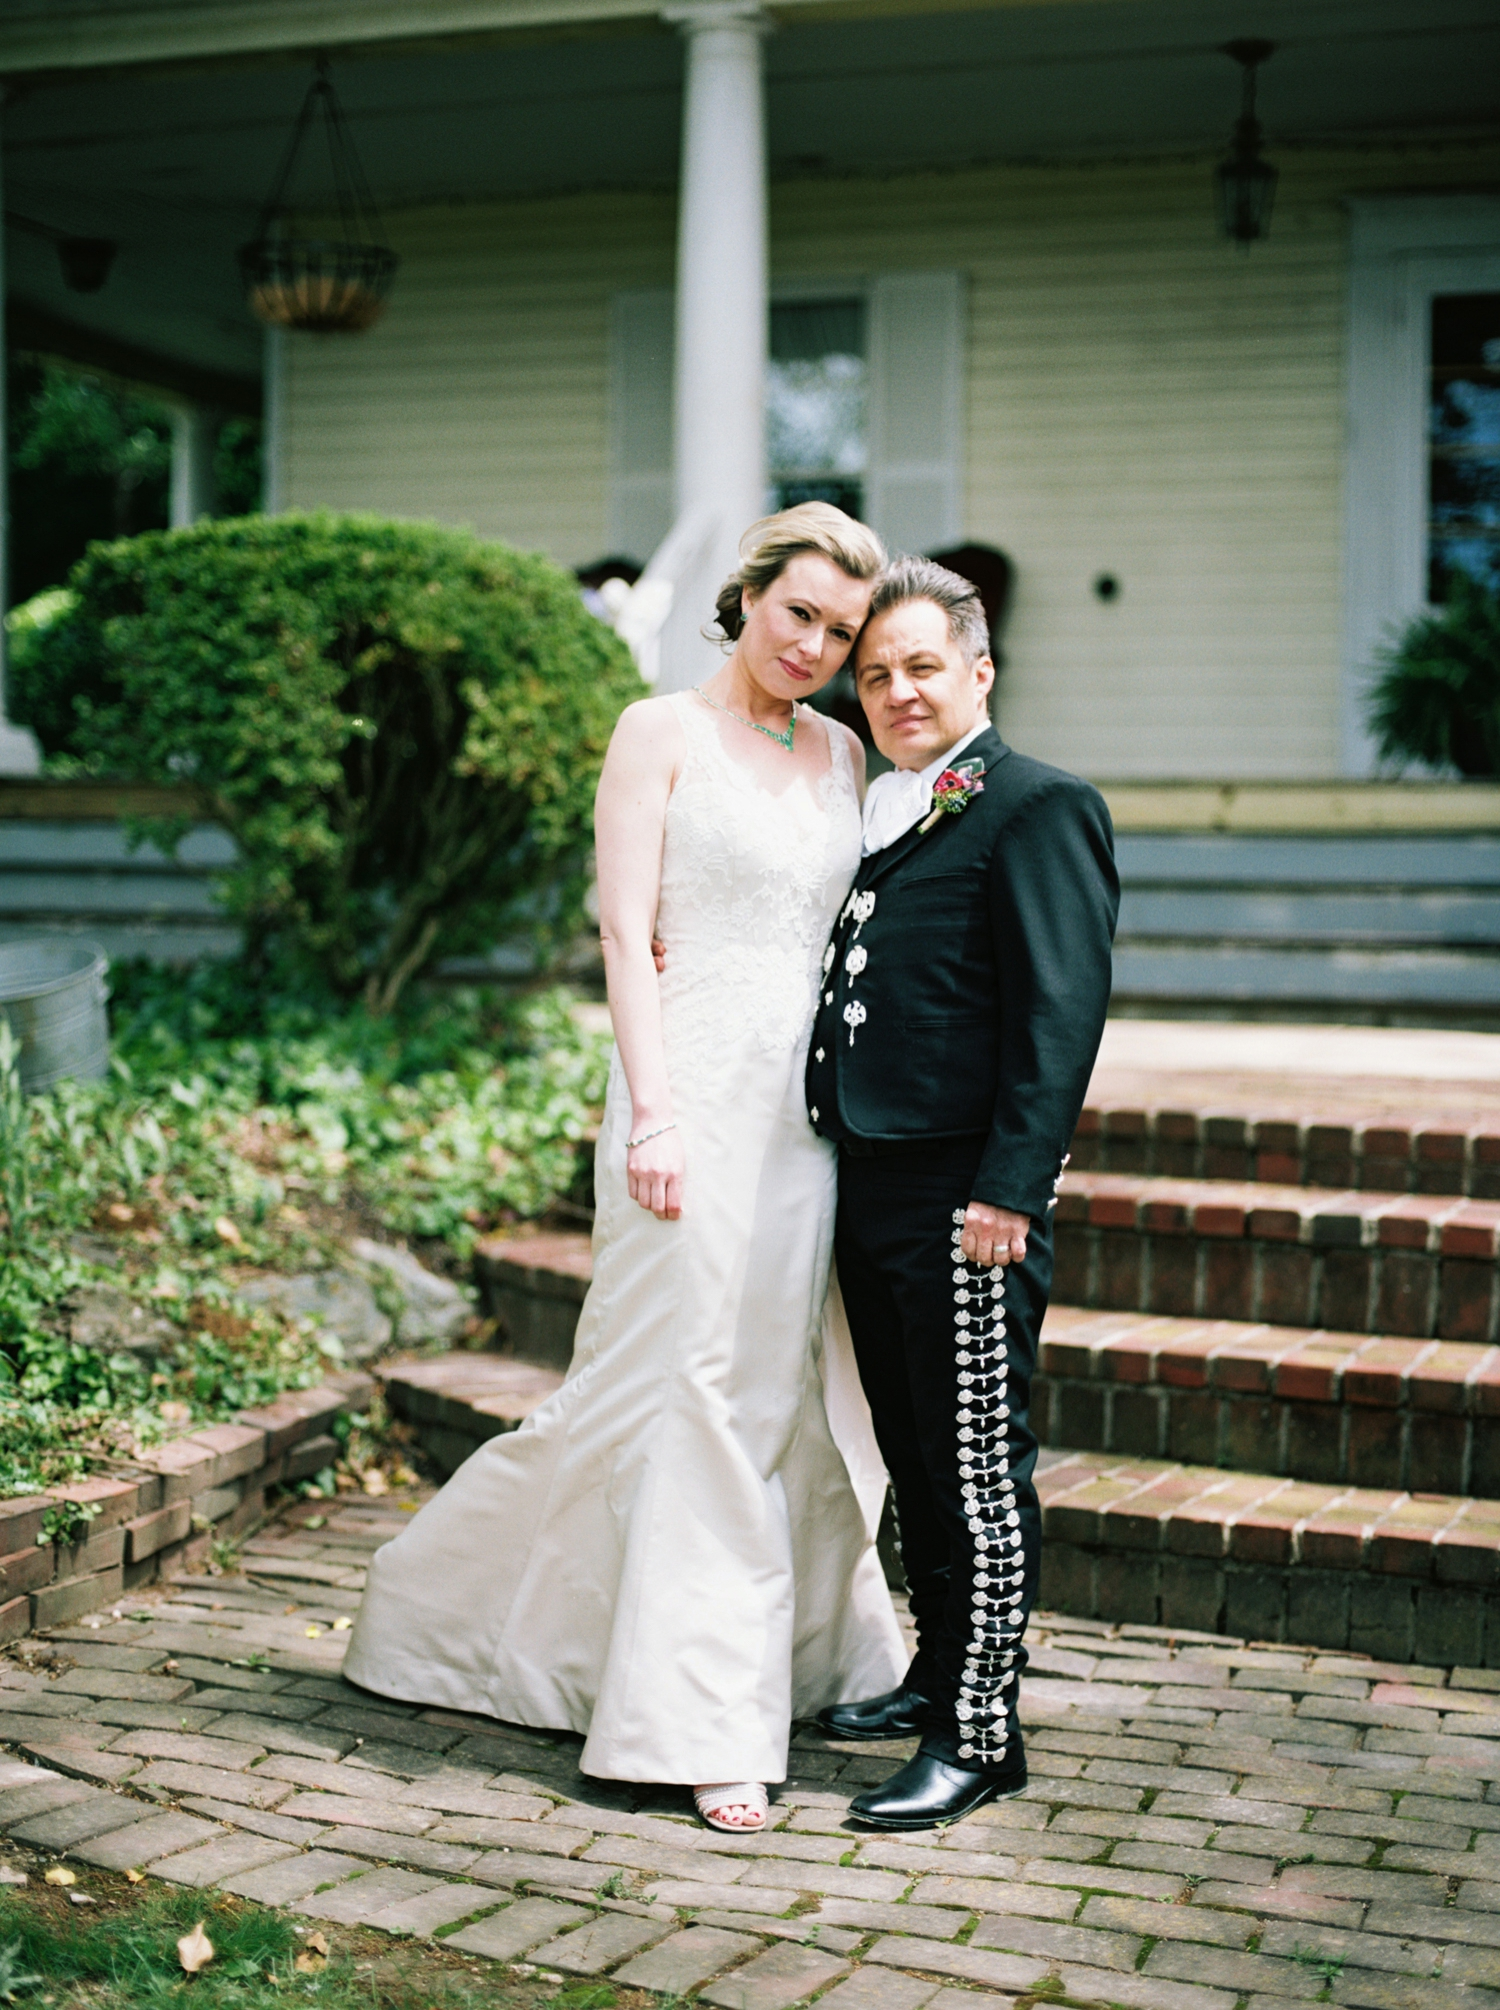 season magnolia manor wedding elisa ignacio czar goss photo 25.jpg